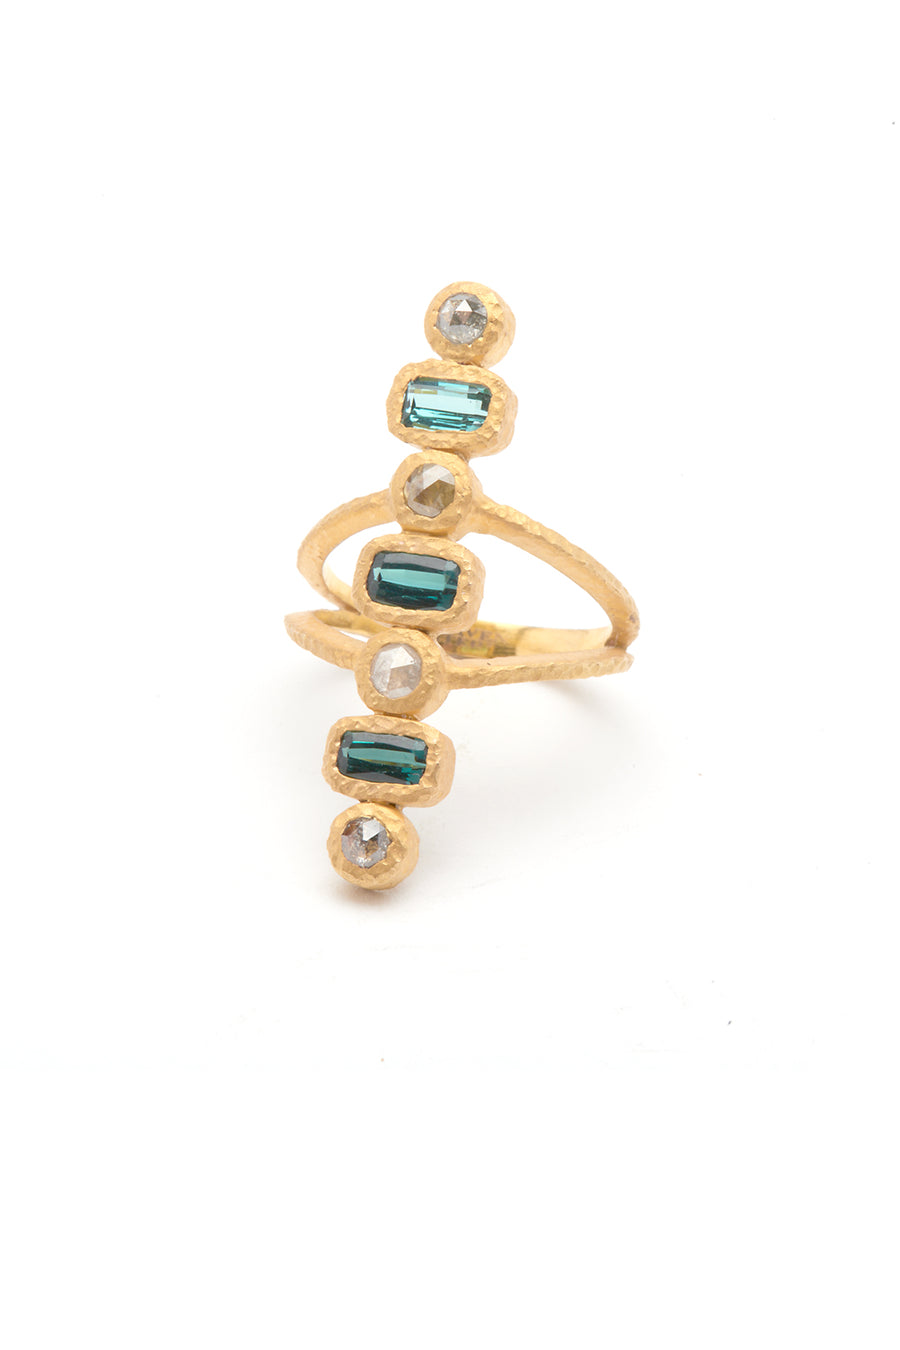 Cleopatra 18K Gold Ring with Raw Diamonds and Tourmaline Stones